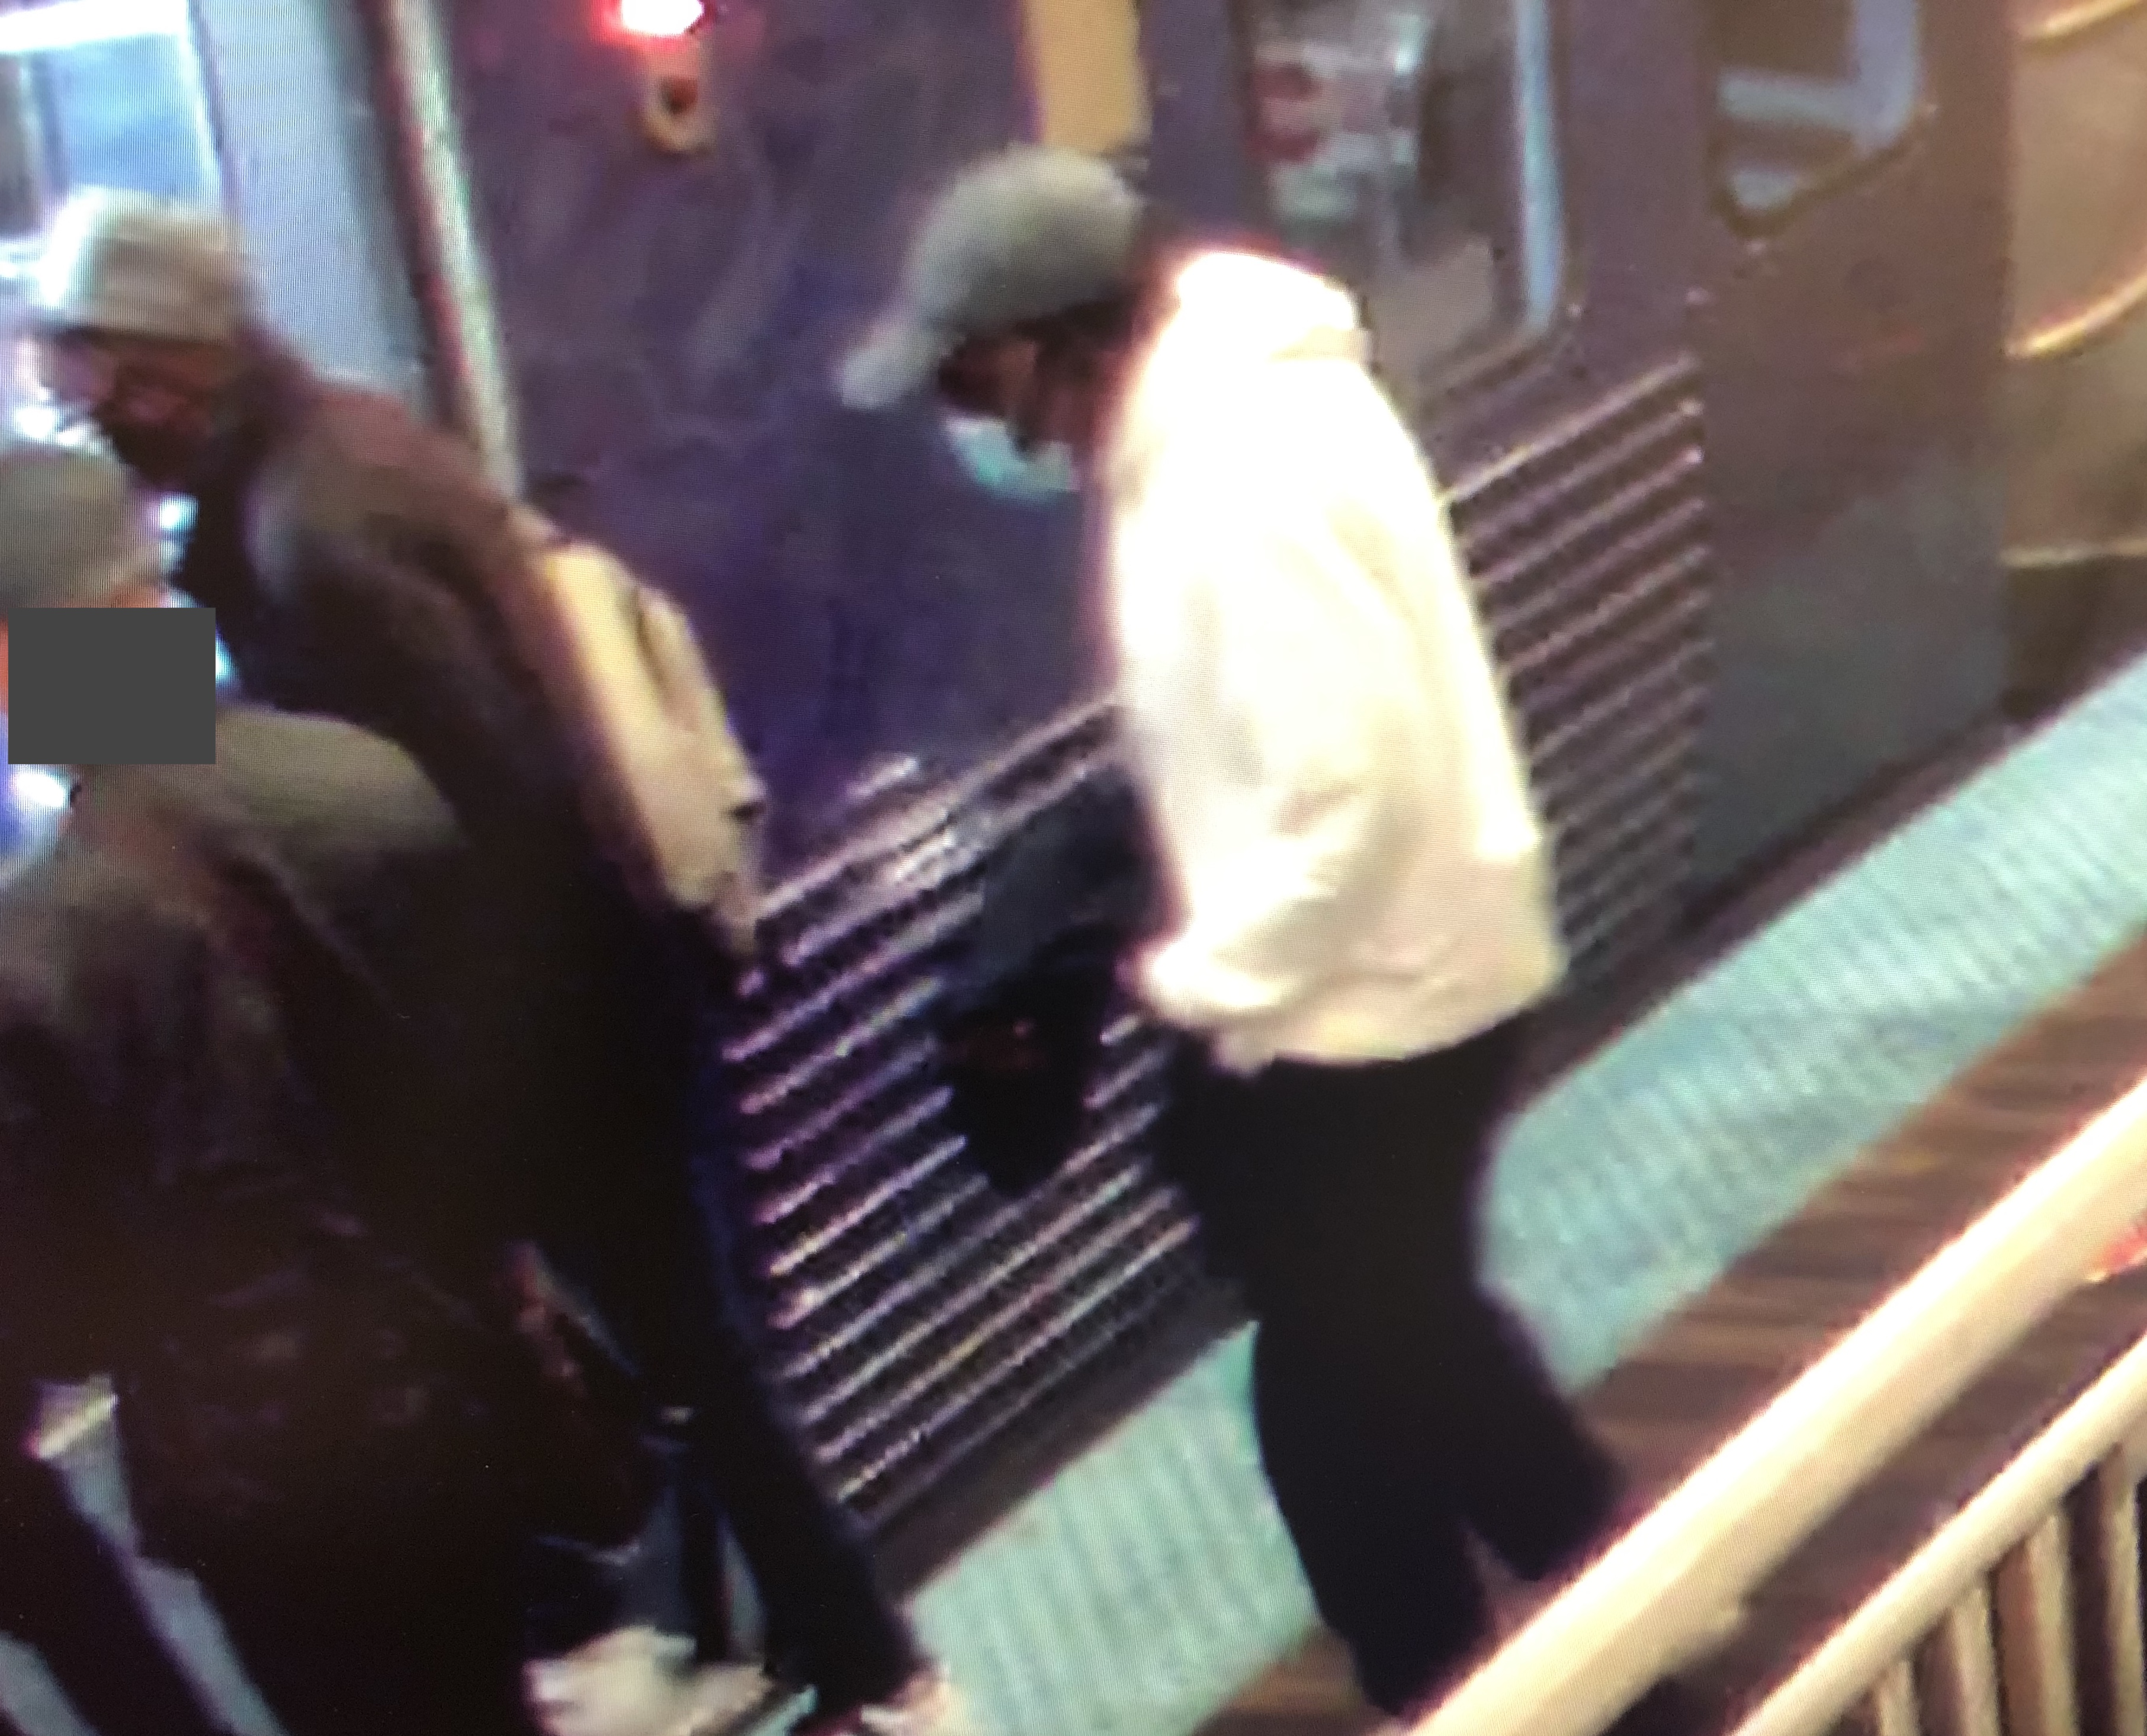 Chicago police say a CTA video shows a pickpocketing team stealing a man's wallet on Sept. 8 on the Washington Street L stop in the Loop. Police identified the man in the white sweatshirt as Edward Miller, who is charged with felony theft in a series of pickpocketing cases. The man with his head blurred is the victim.